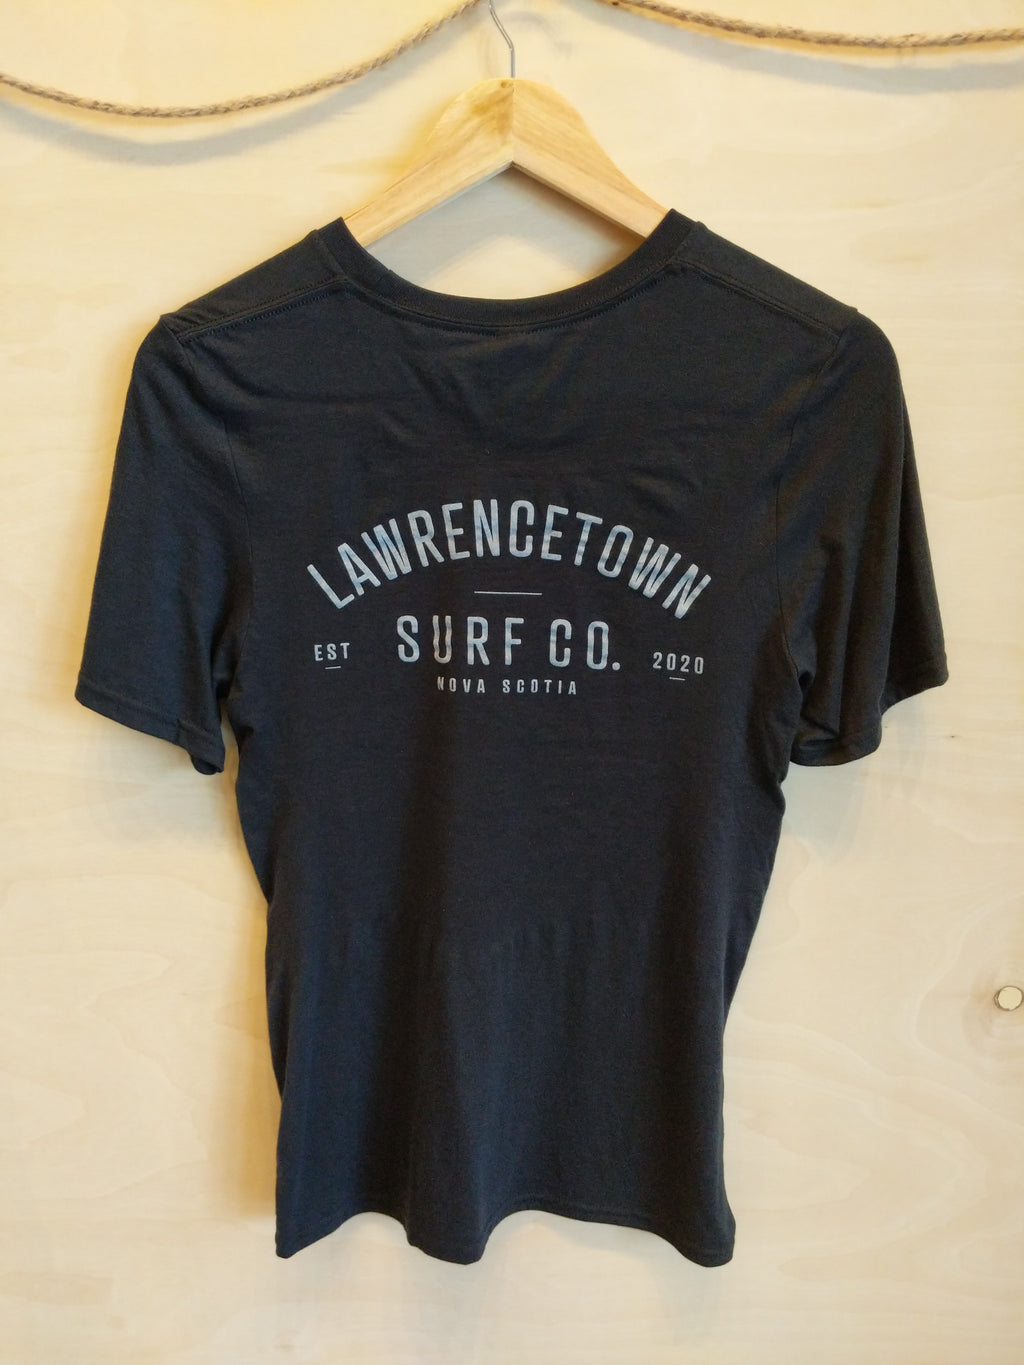 Lawrencetown Surf Co. Adult Tee - Black / White